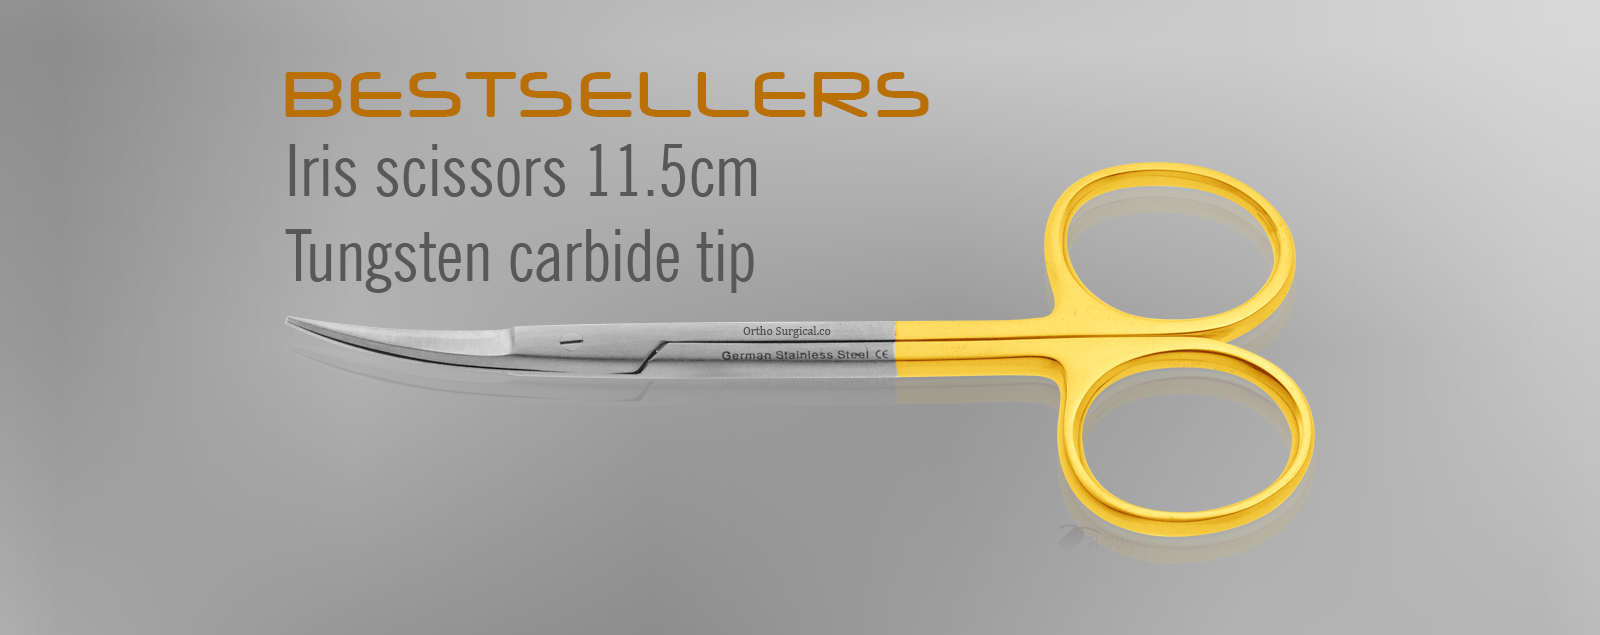 Iris Scissors Tangsten Carbide Tip